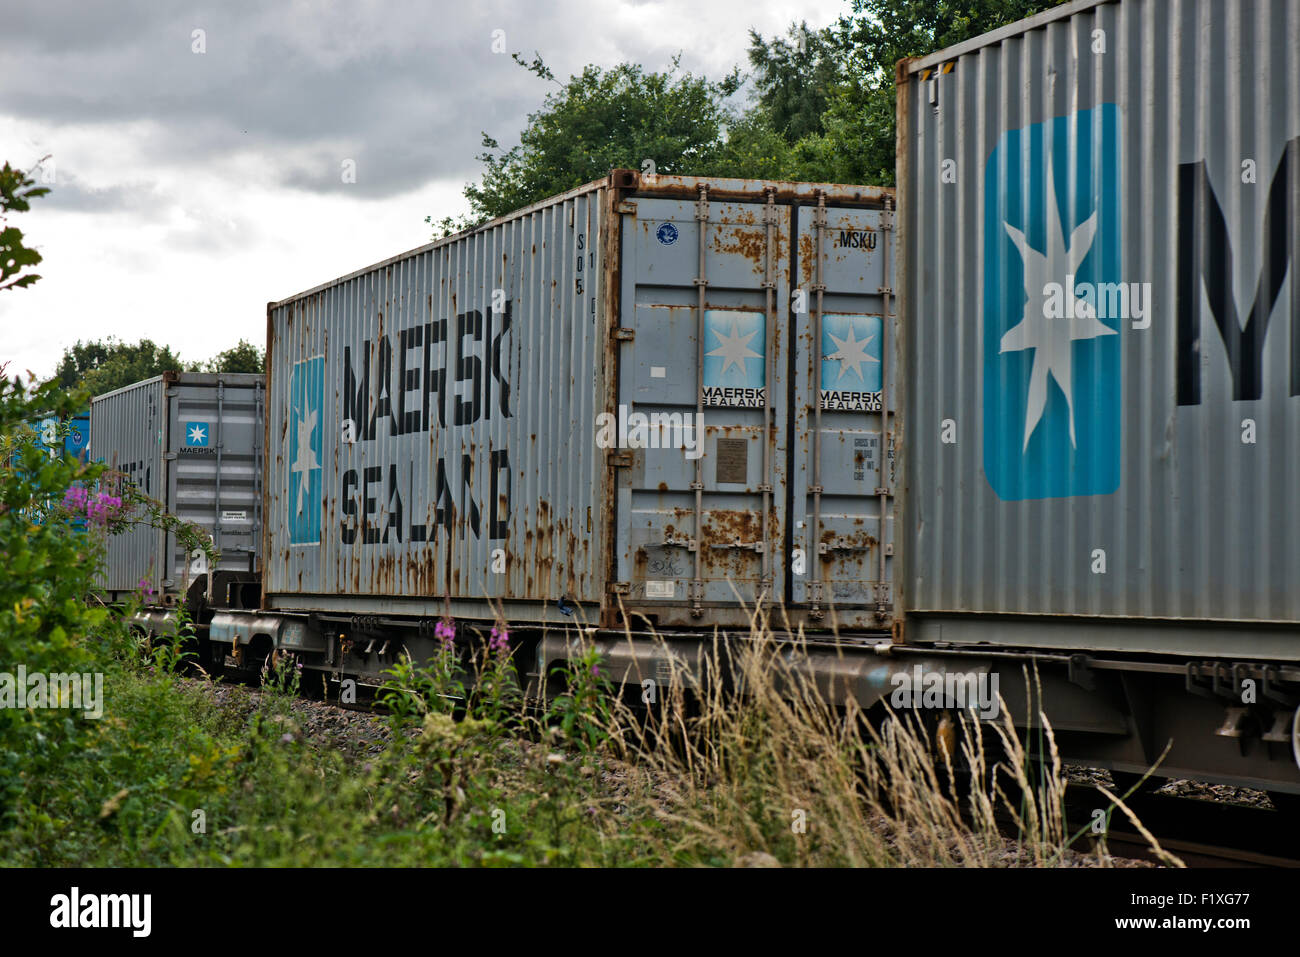 MAERSK Sealand Cargo Containers on railway line next to the Whisby Nature Park, Near Lincoln, Lincolnshire, UK - Stock Image